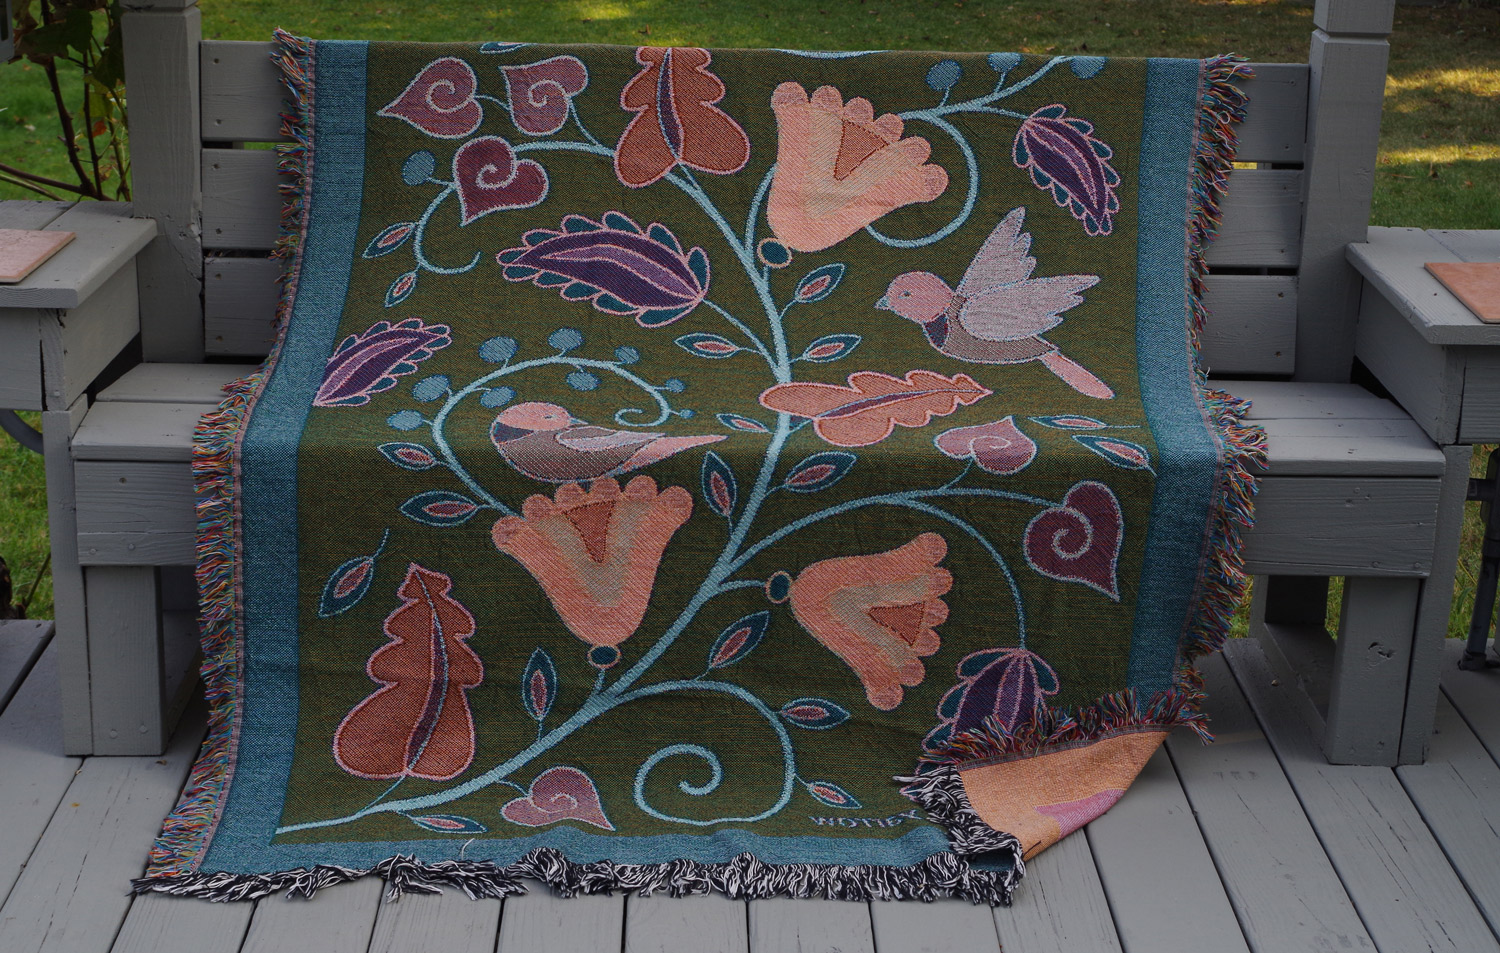 """Wynn Yarrow """"Garden Fantasy - Reverse Side"""" 100% cotton jacquard woven tapestry/blanket, (made in the USA), design by Wynn Yarrow $225. Inquire on availability of colors/designs"""